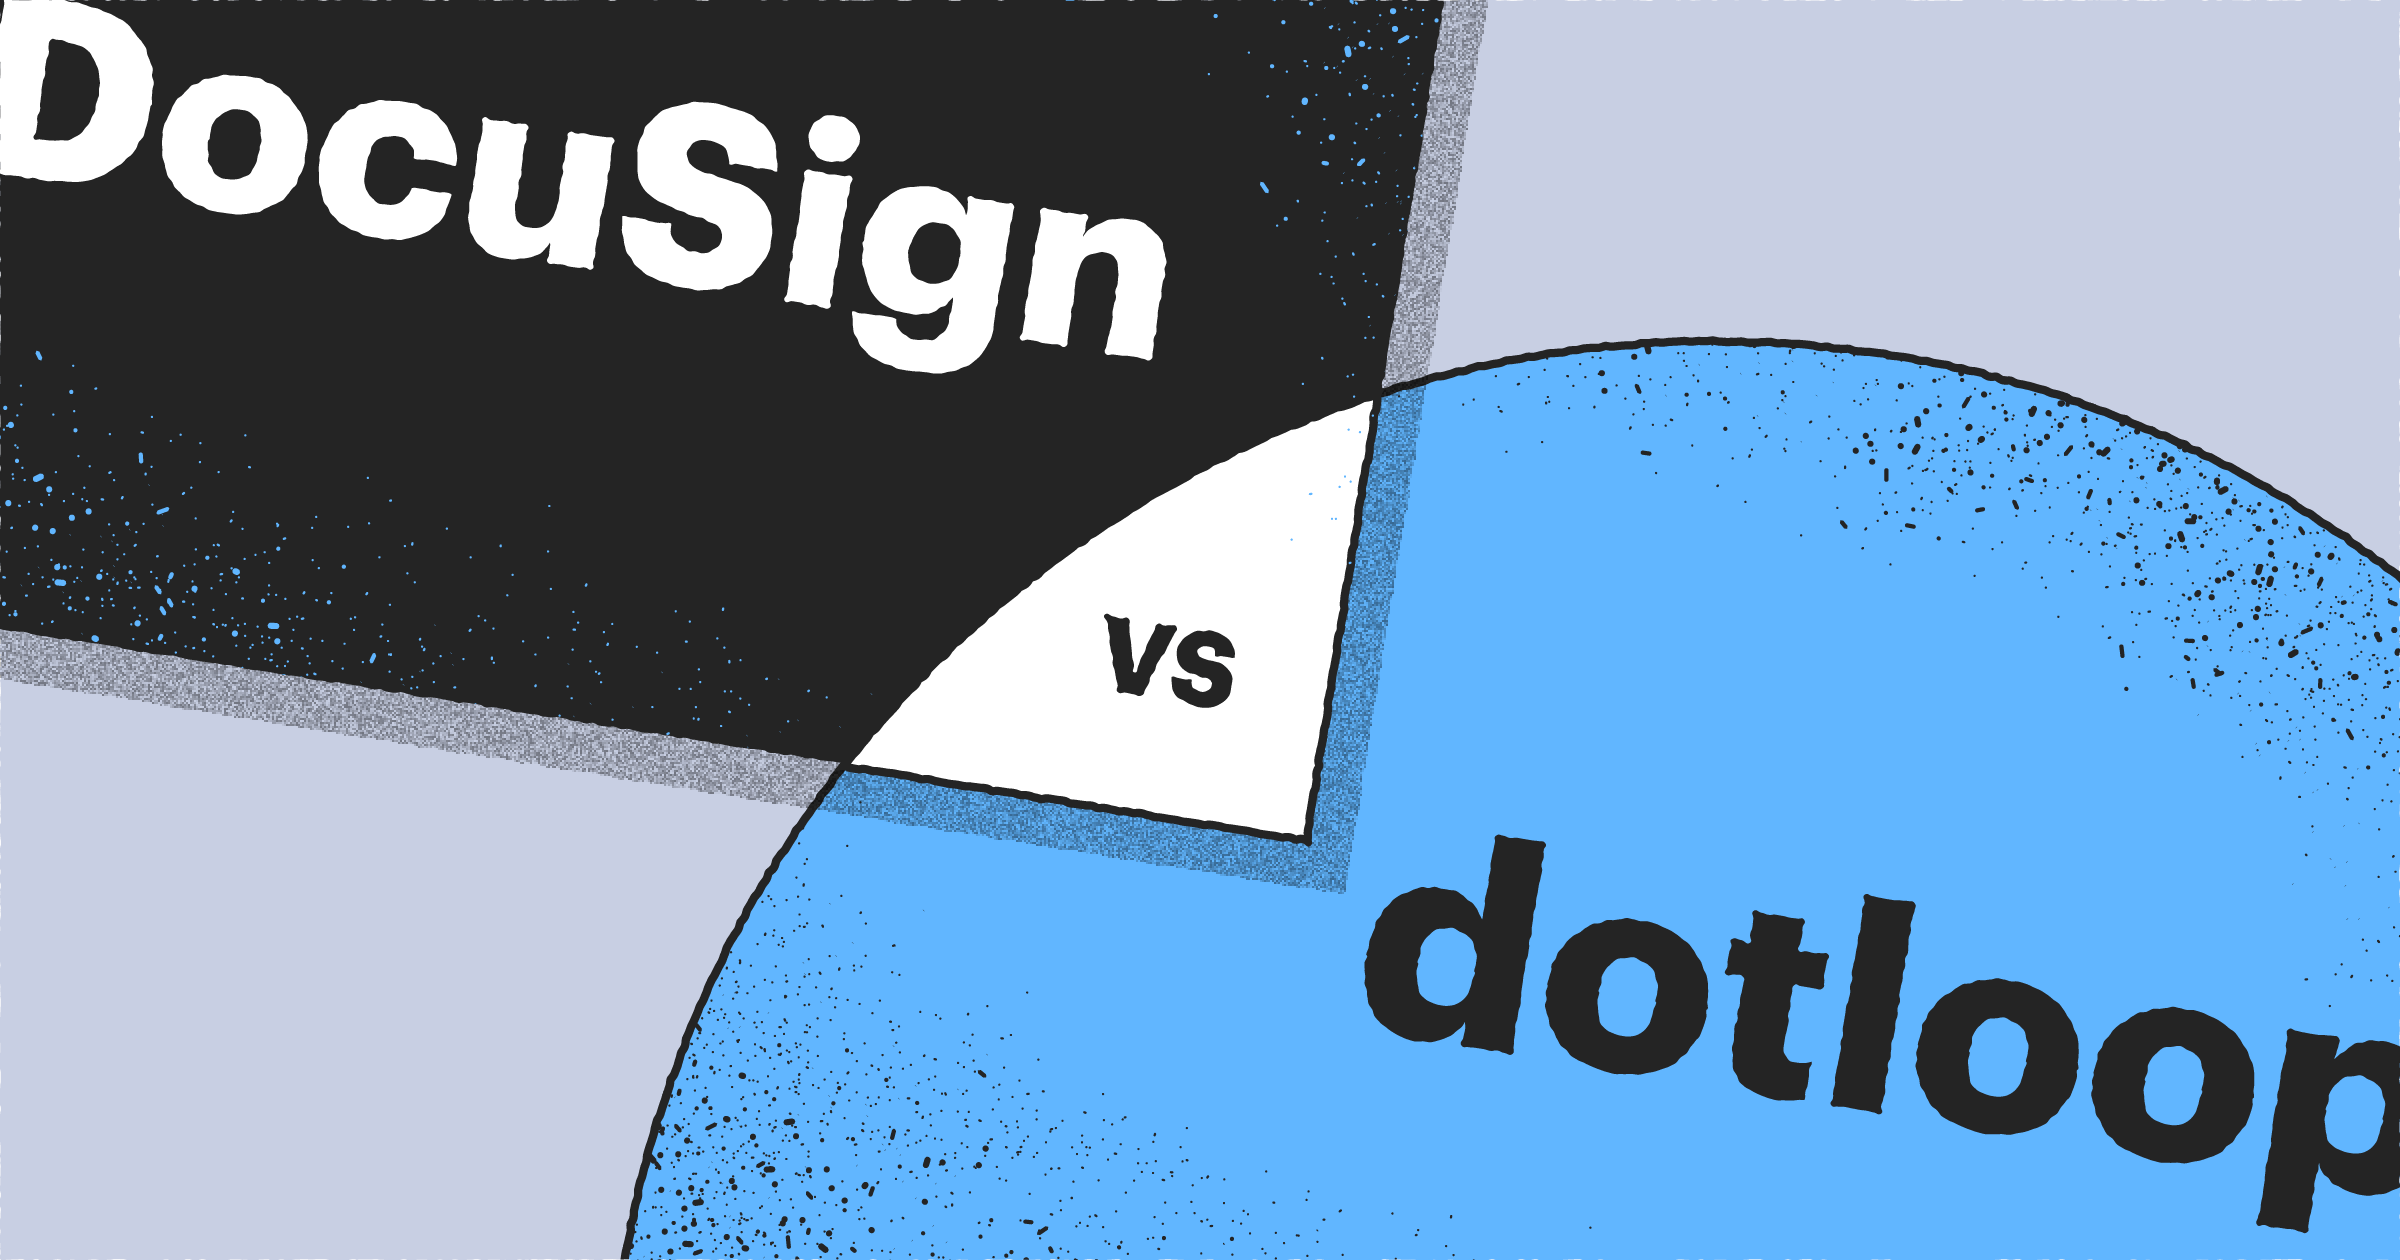 DocuSign vs dotloop